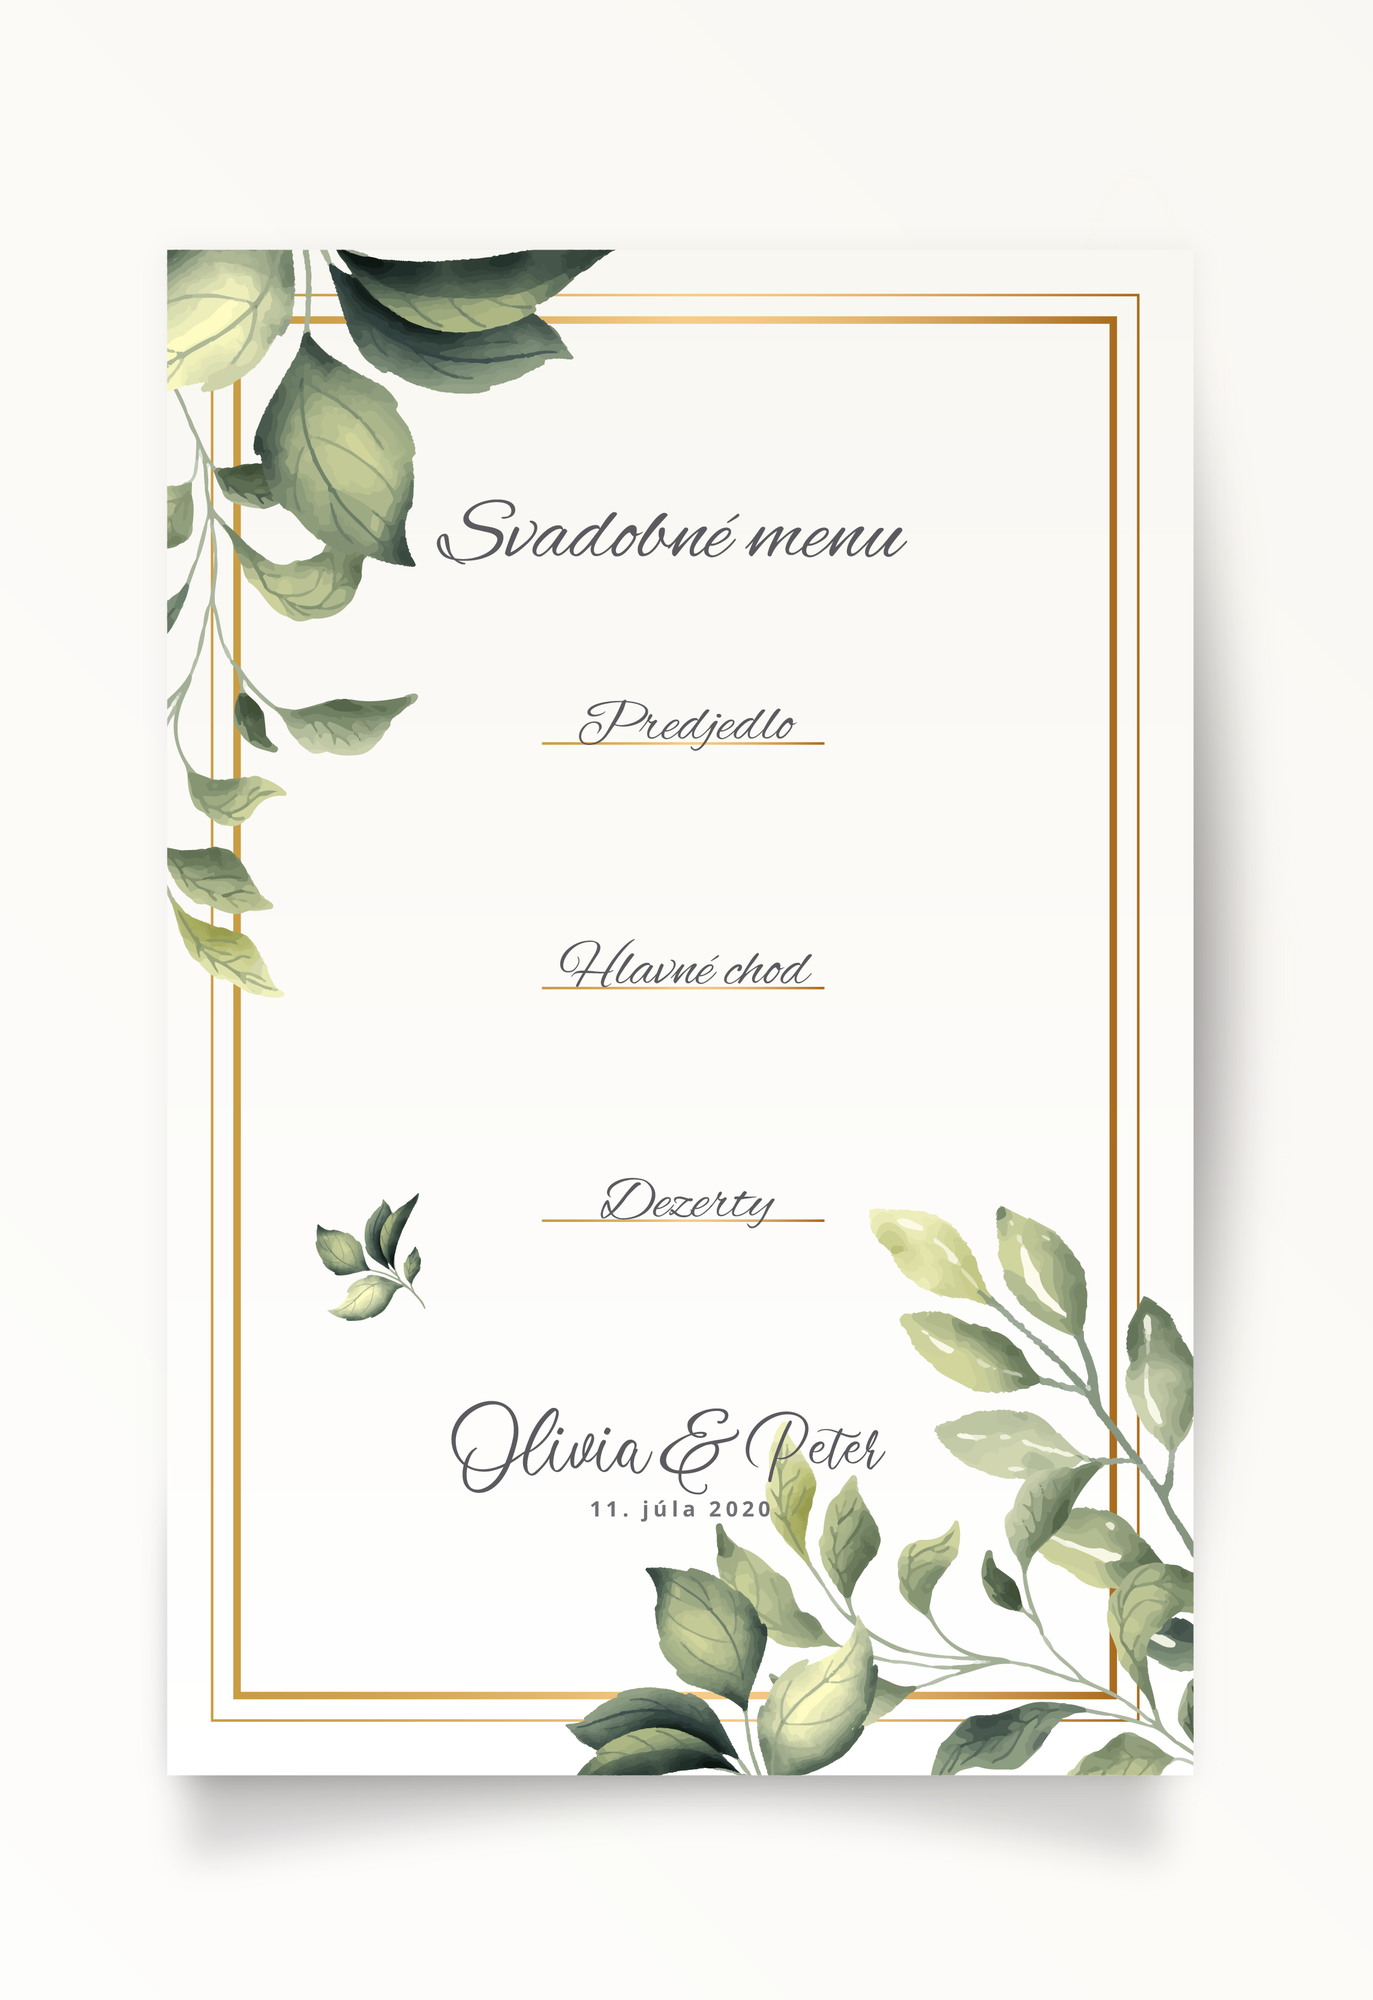 https://print.arcdesign.sk/images/products_gallery_images/svadobn_menu1-01.png